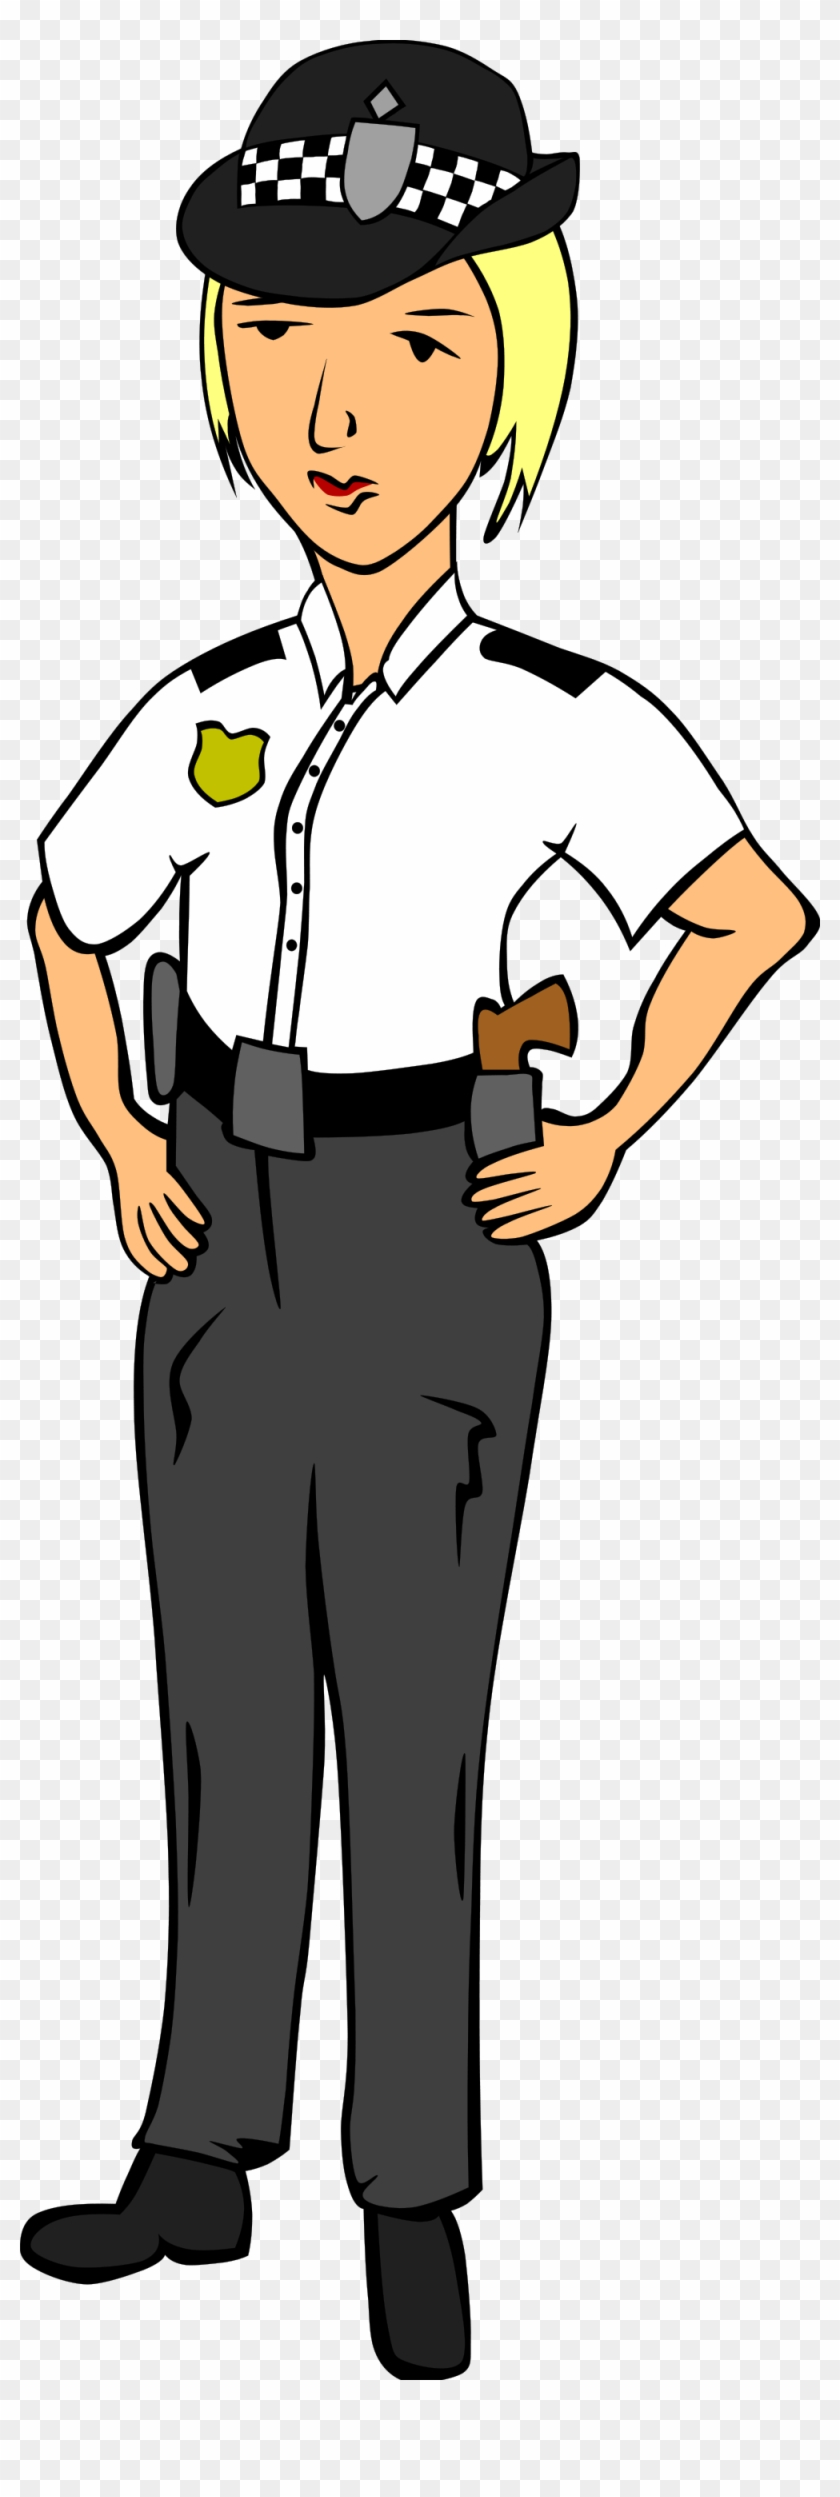 Free Vector Woman Police Officer Clip Art - Police Officer Cartoon Uk #55344